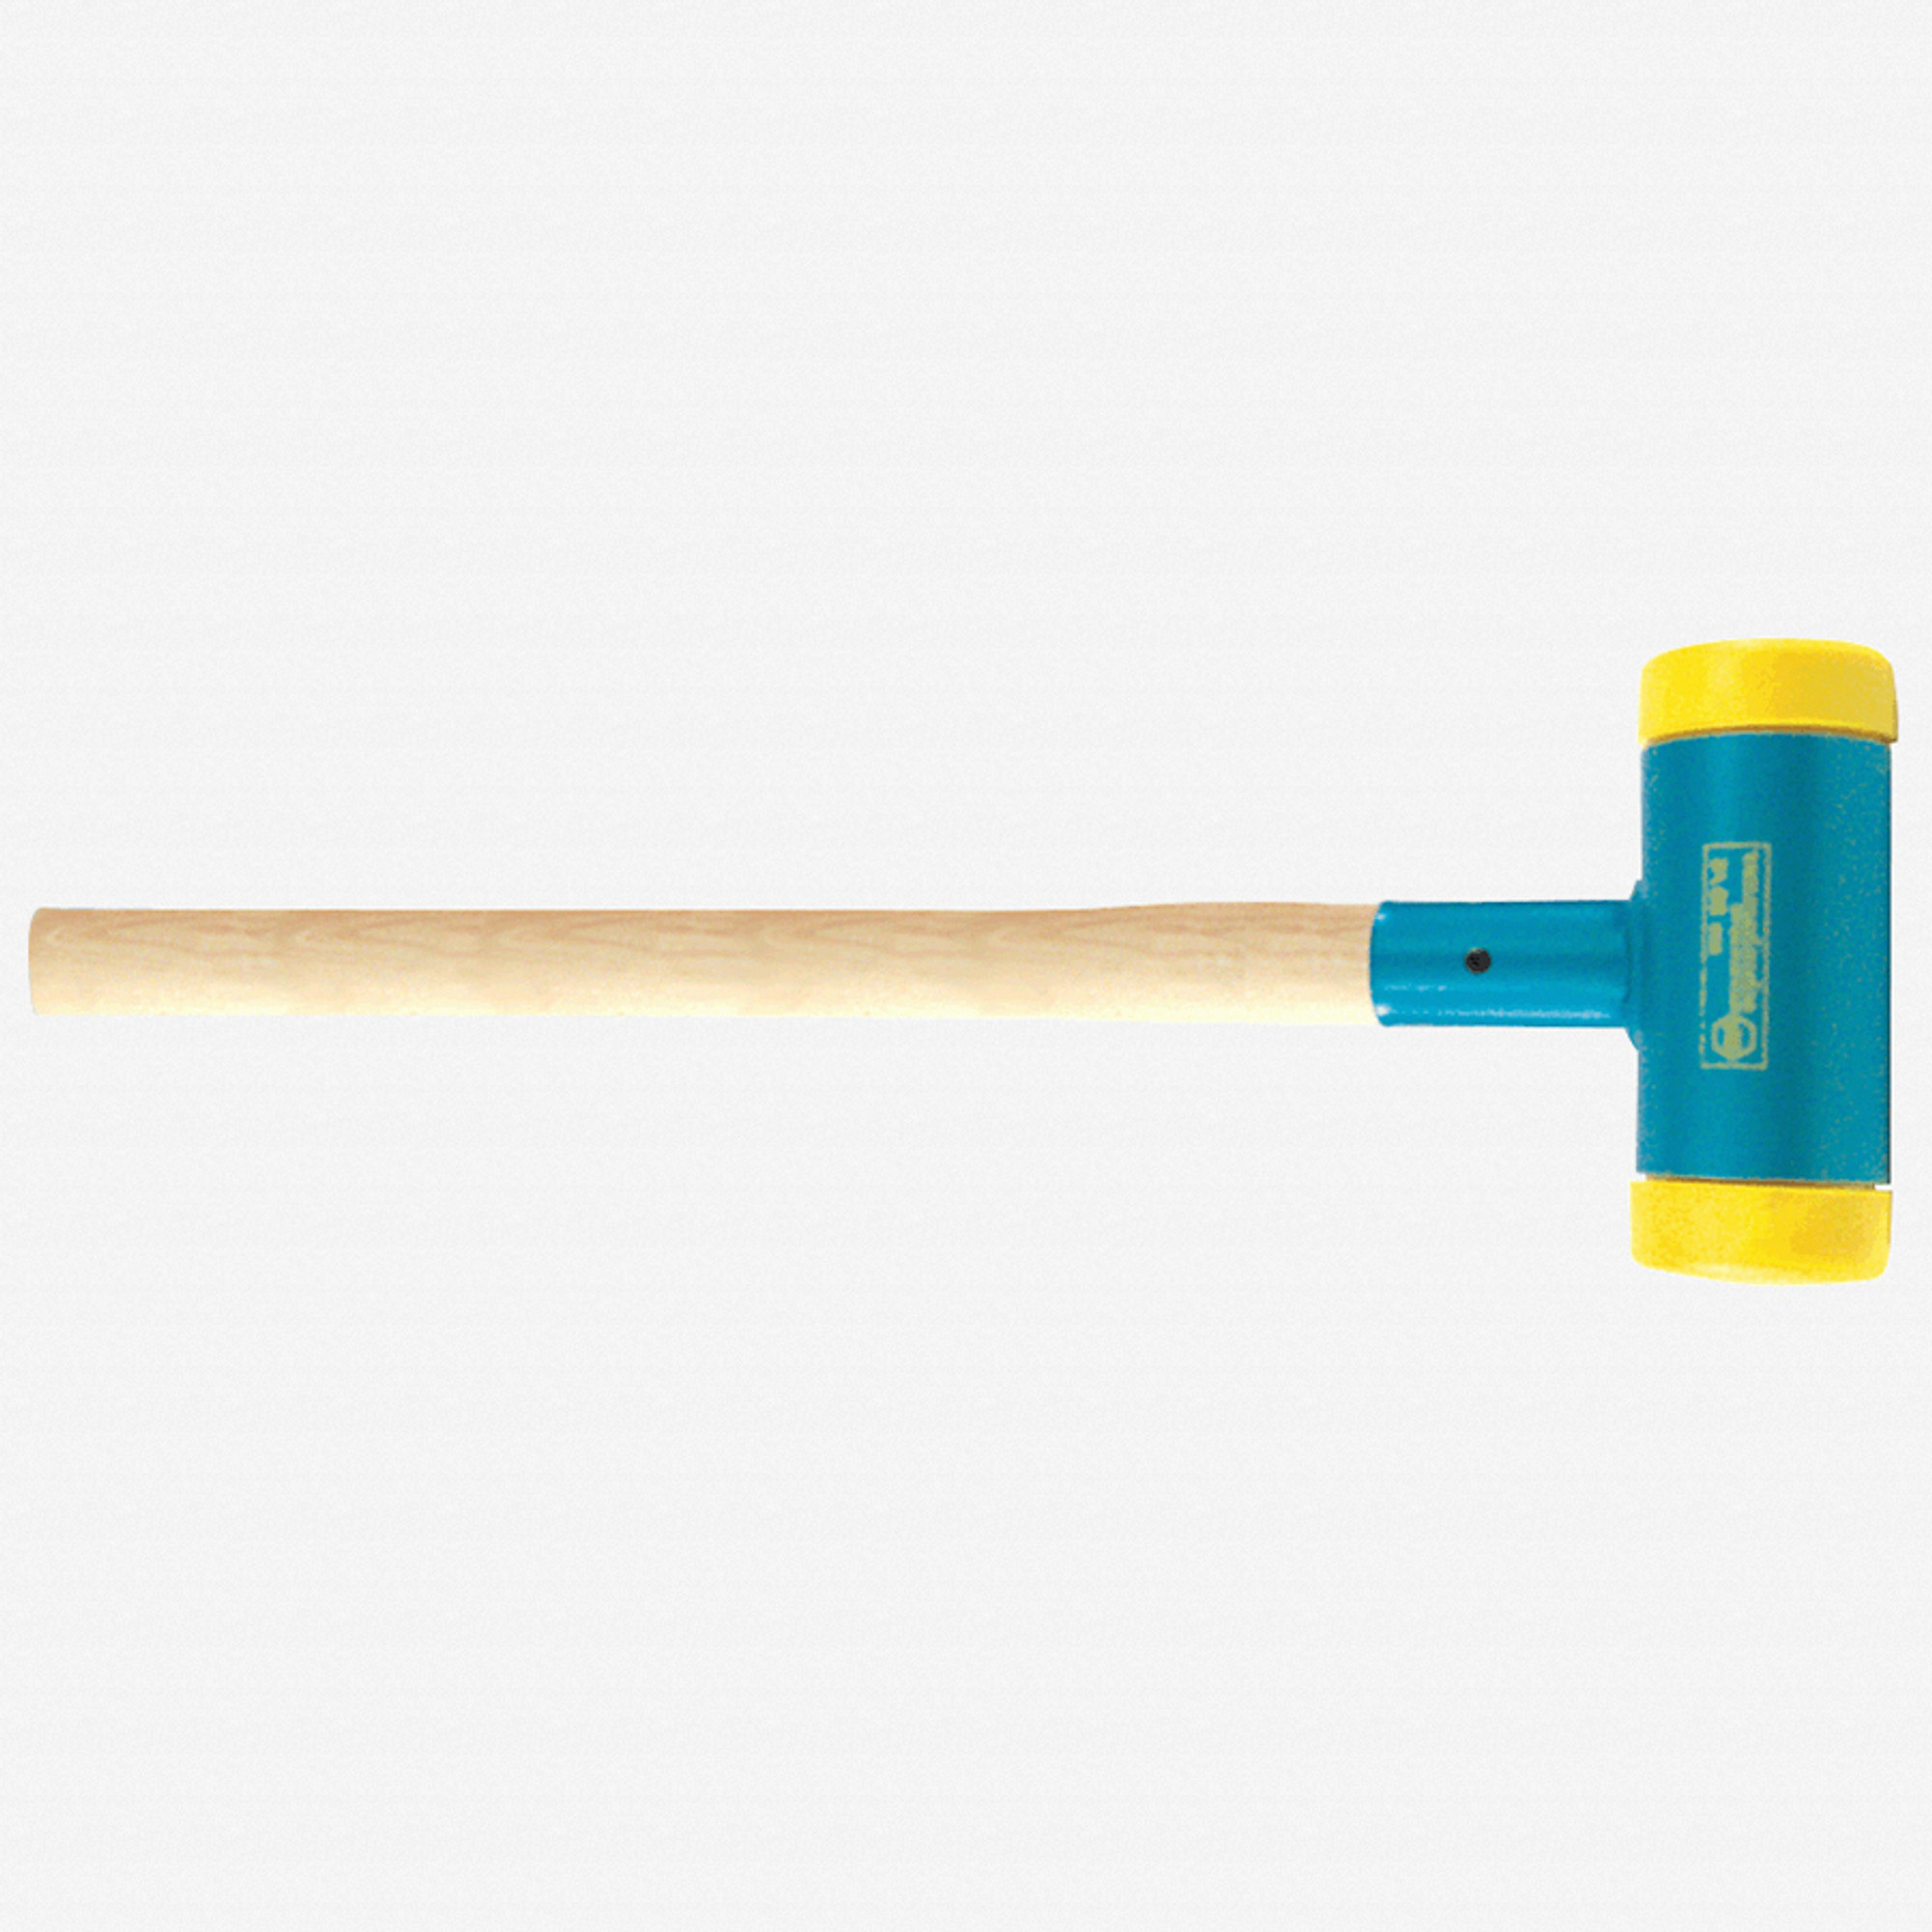 Wiha 80299 Dead Blow Hammer 3 9 Face X 15 1 Lbs deadblow steel shot filled head adds extra force to hammer blows and eliminates rebound & spark, ideal for auto body work. wiha 80299 15 1 lbs dead blow sledge hammer